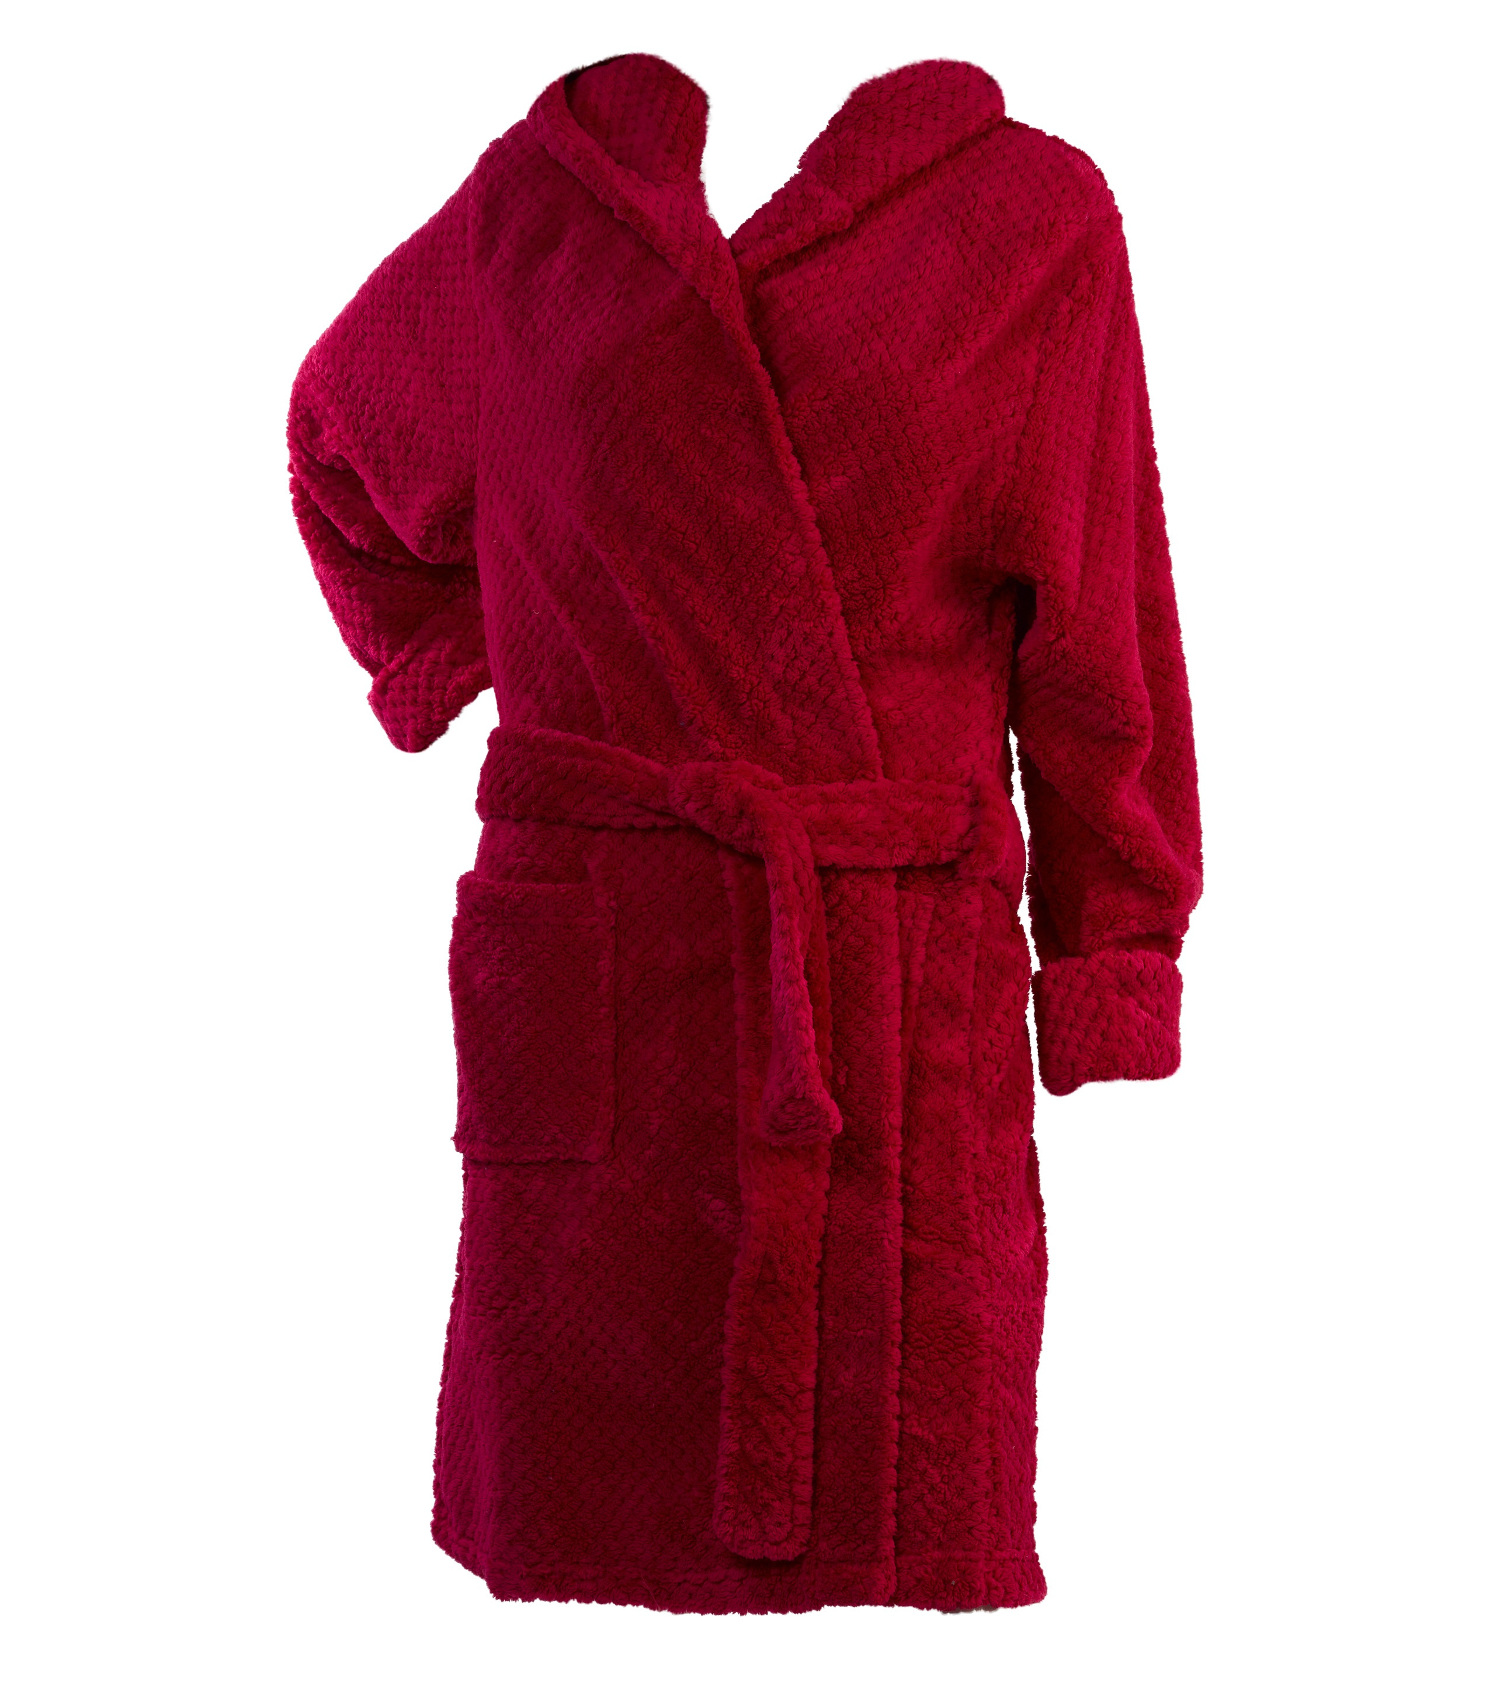 Dressing Gown Womens Hooded Bath Robe Soft Waffle Fleece Slenderella ...